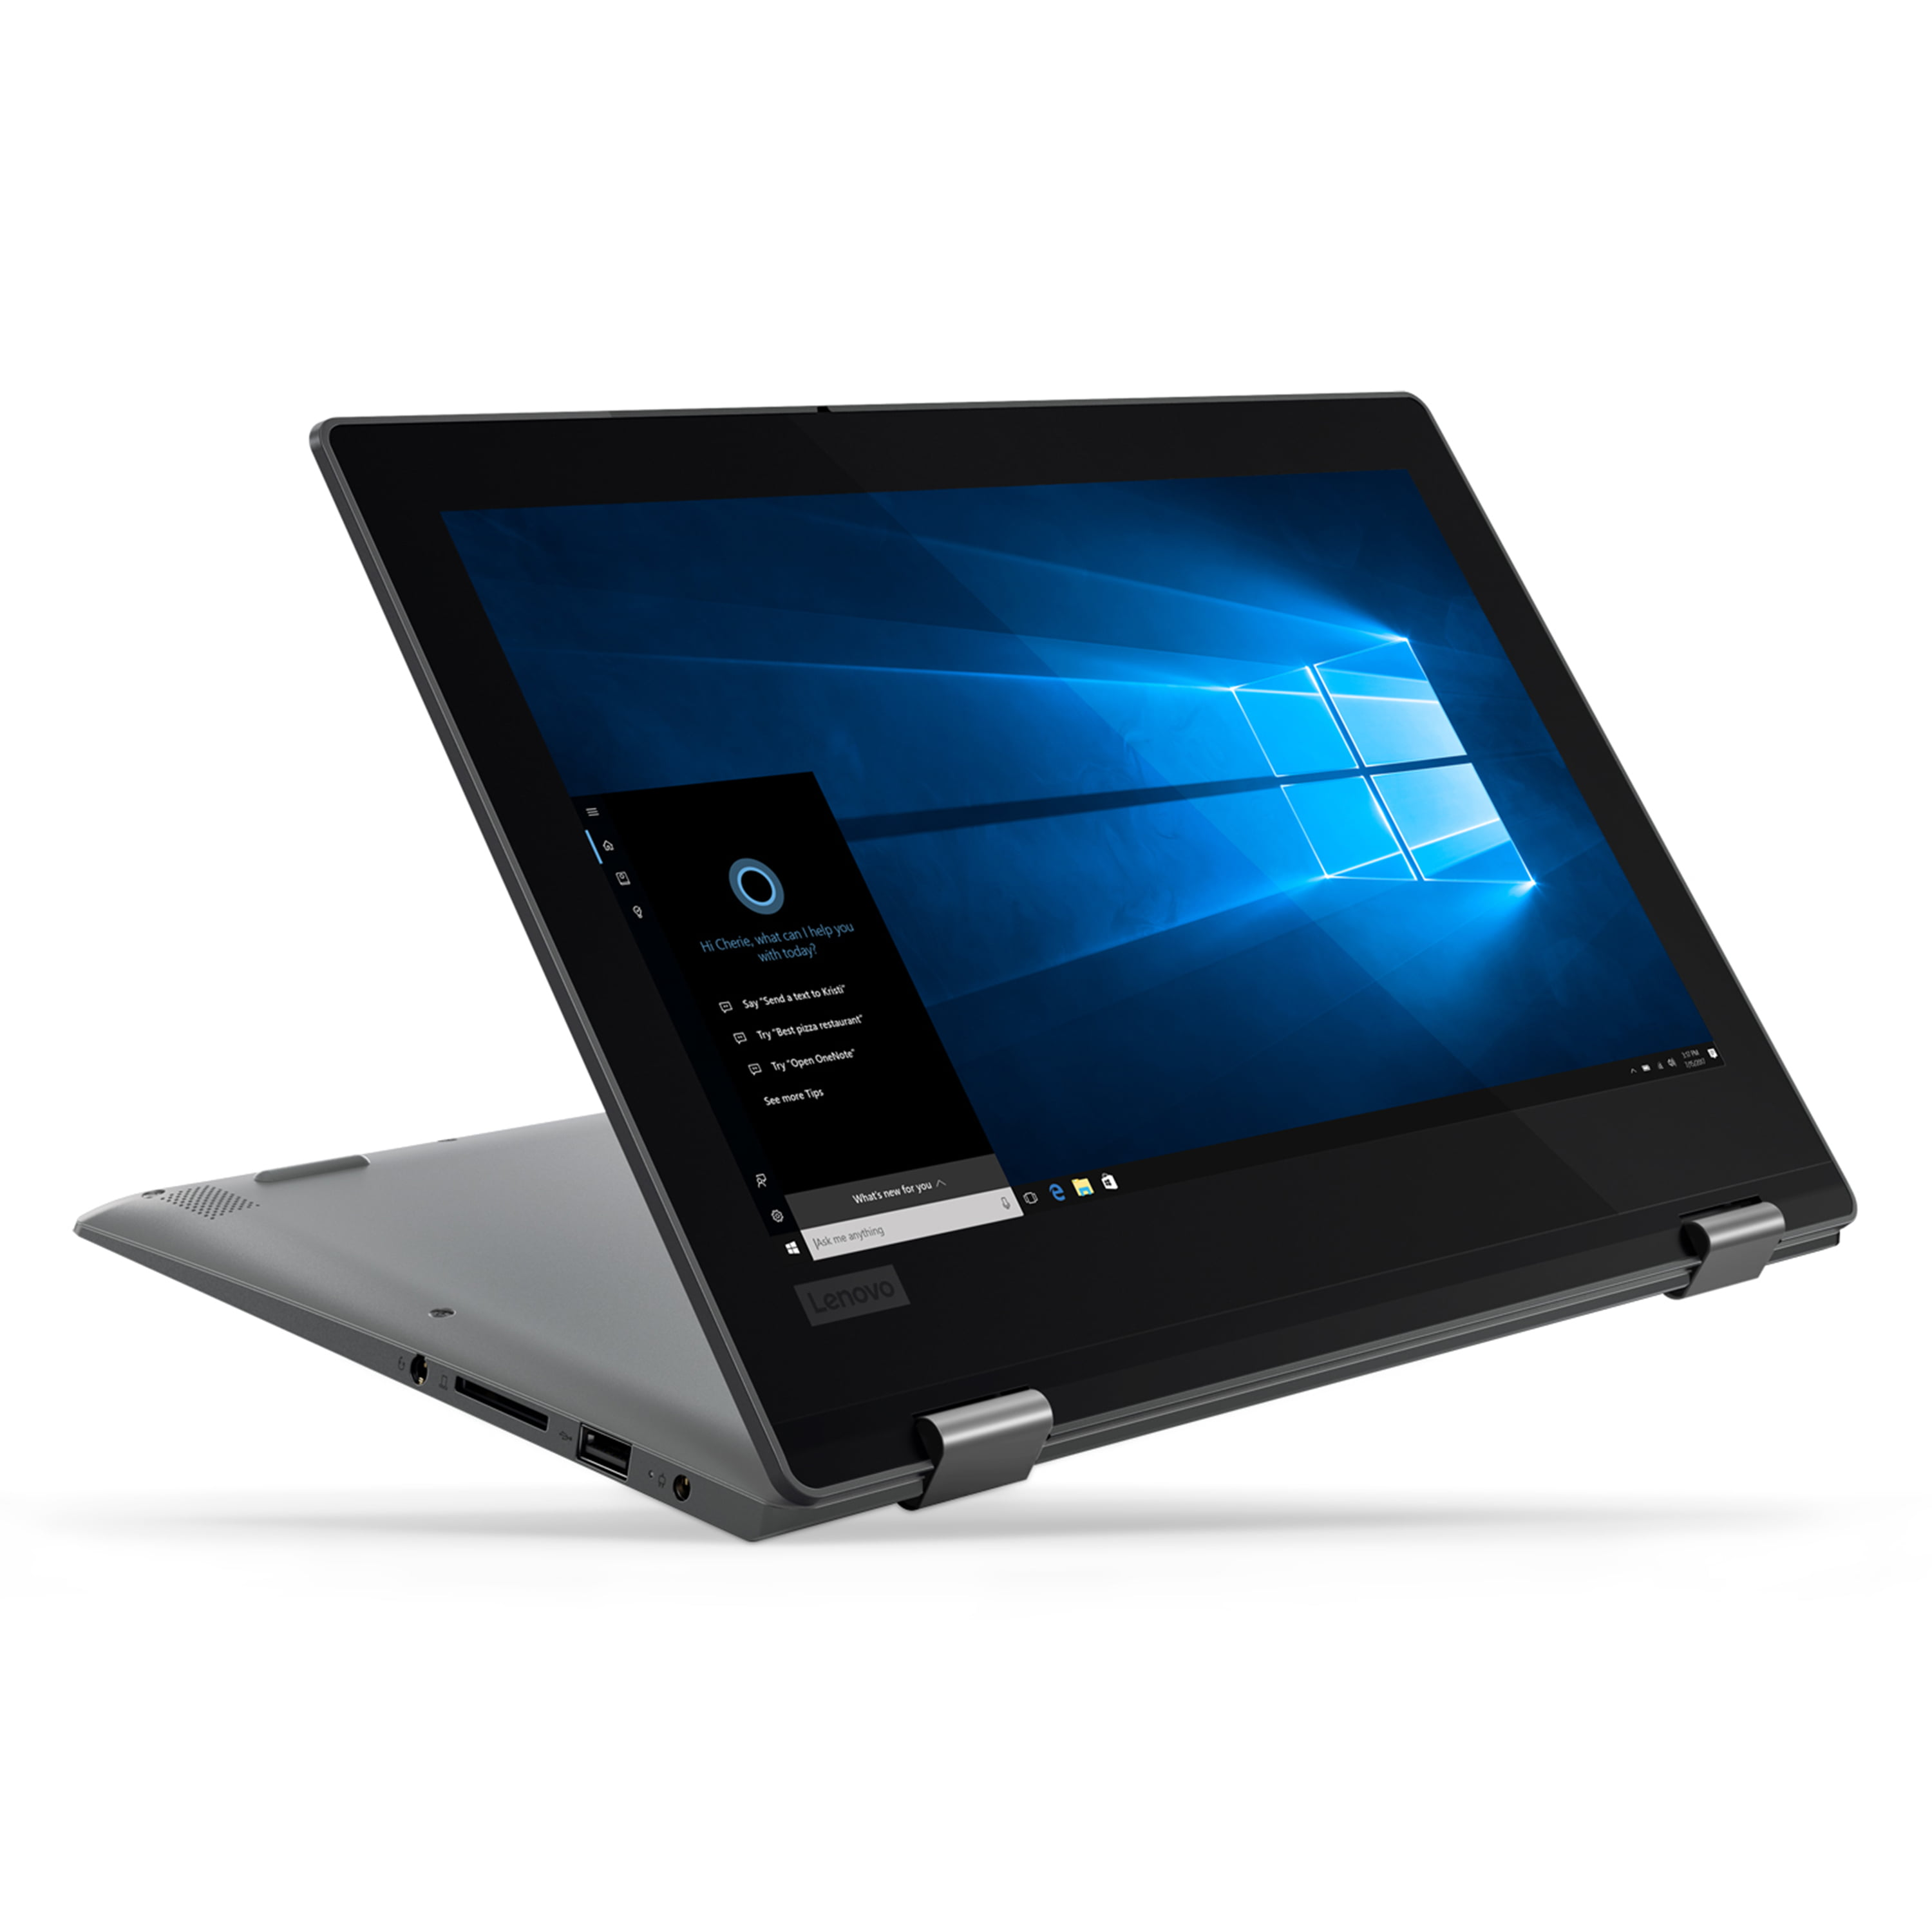 "Lenovo Flex 11 11.6"" 2 in 1 Laptop, Windows 10, Intel Celeron N4000 Dual-Core Processor, 4GB RAM, 64GB eMMC Solid State Drive, Office 365 1 Year Subscription - 81A70005US"